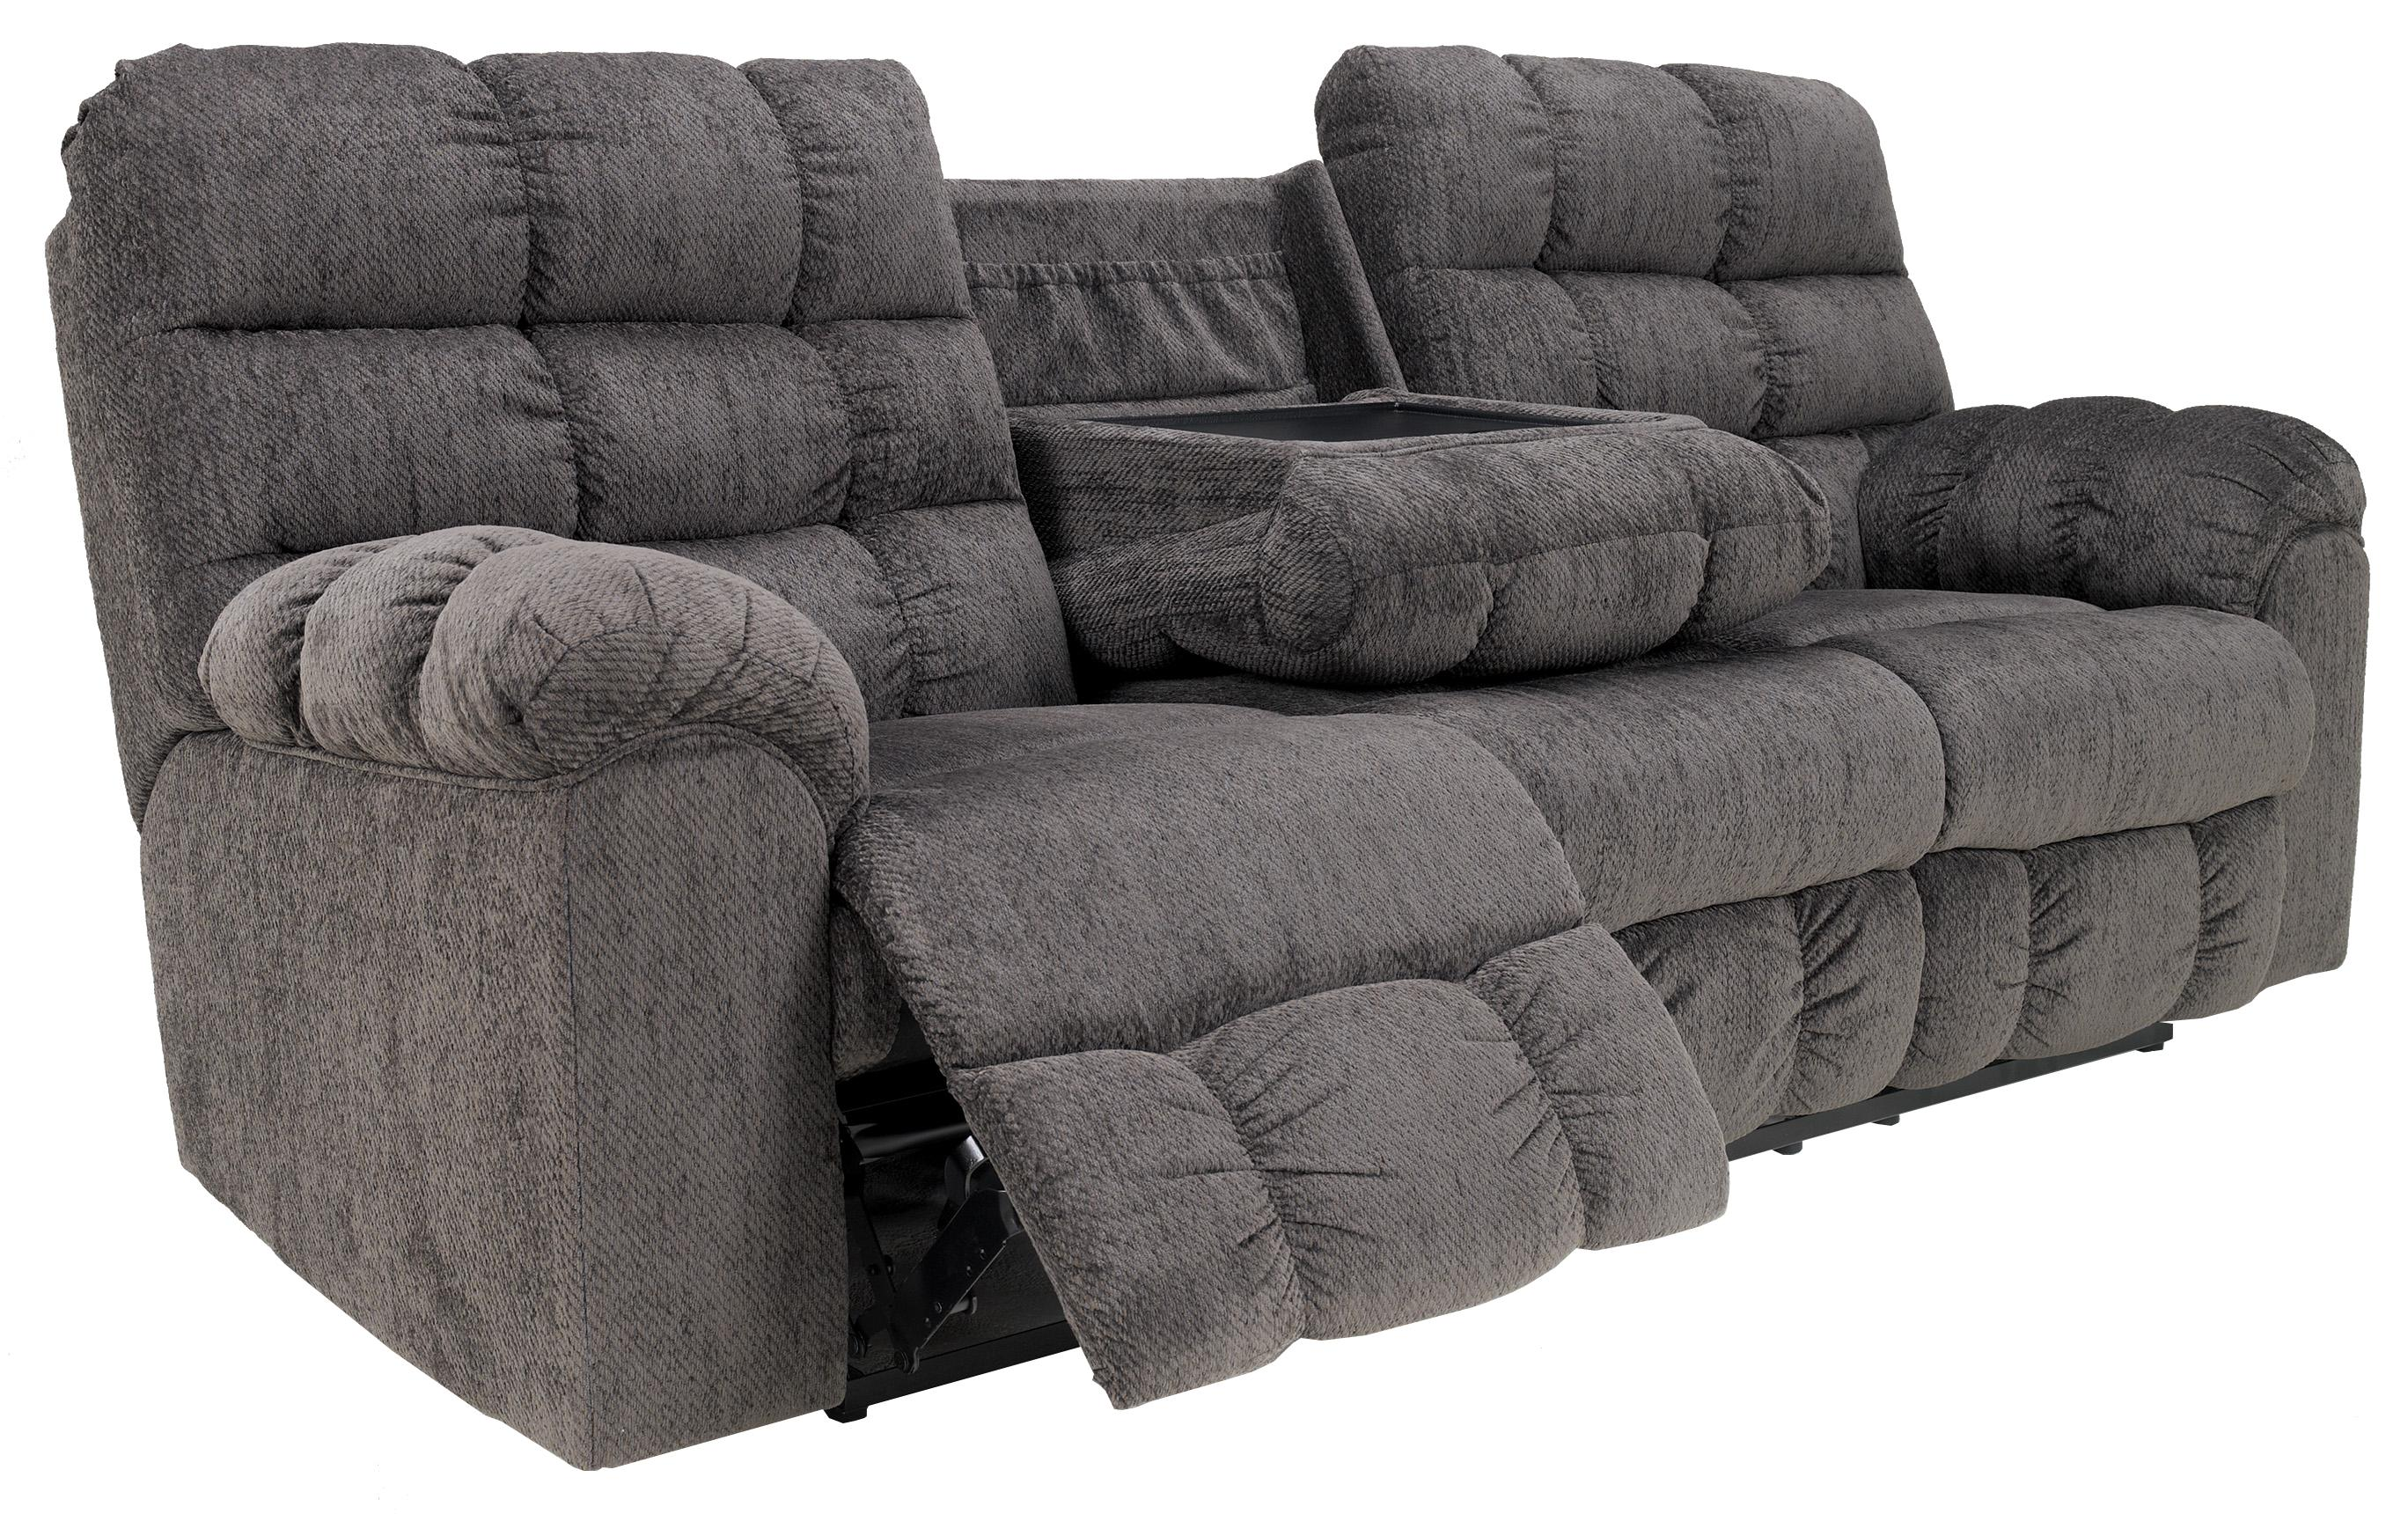 Reclining sofa with drop down table and cup holders by signature design by ashley wolf and Loveseat with cup holders